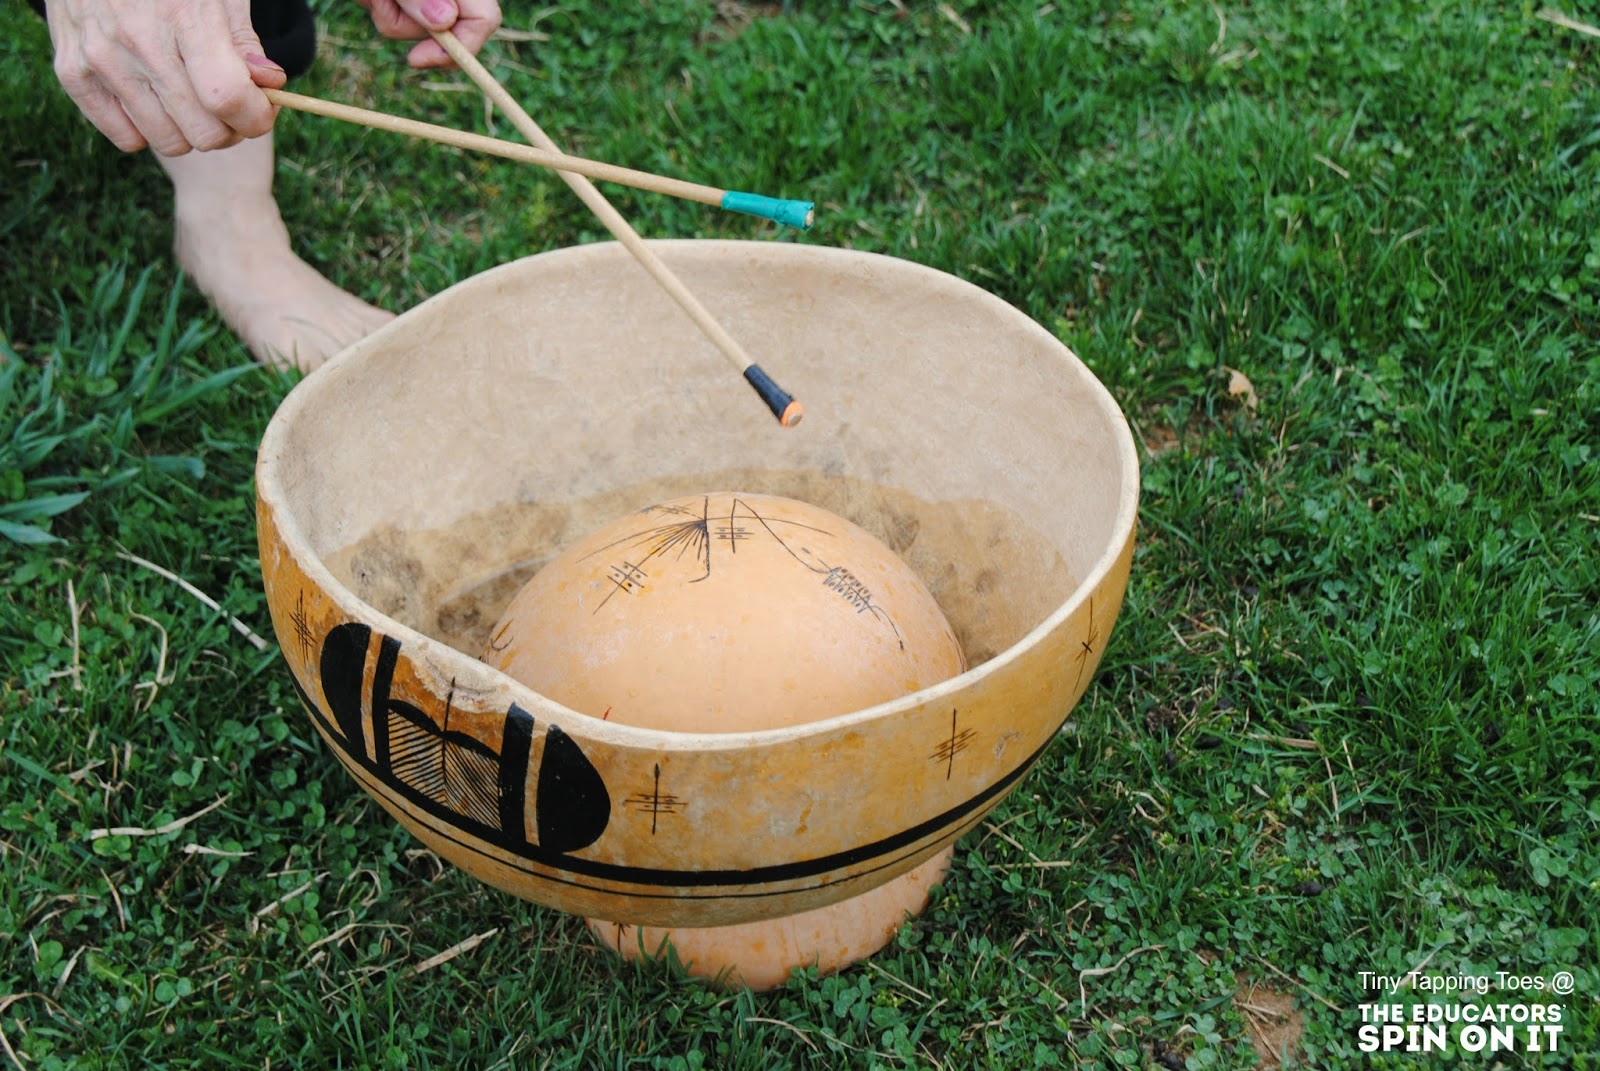 water drum garden music instrument